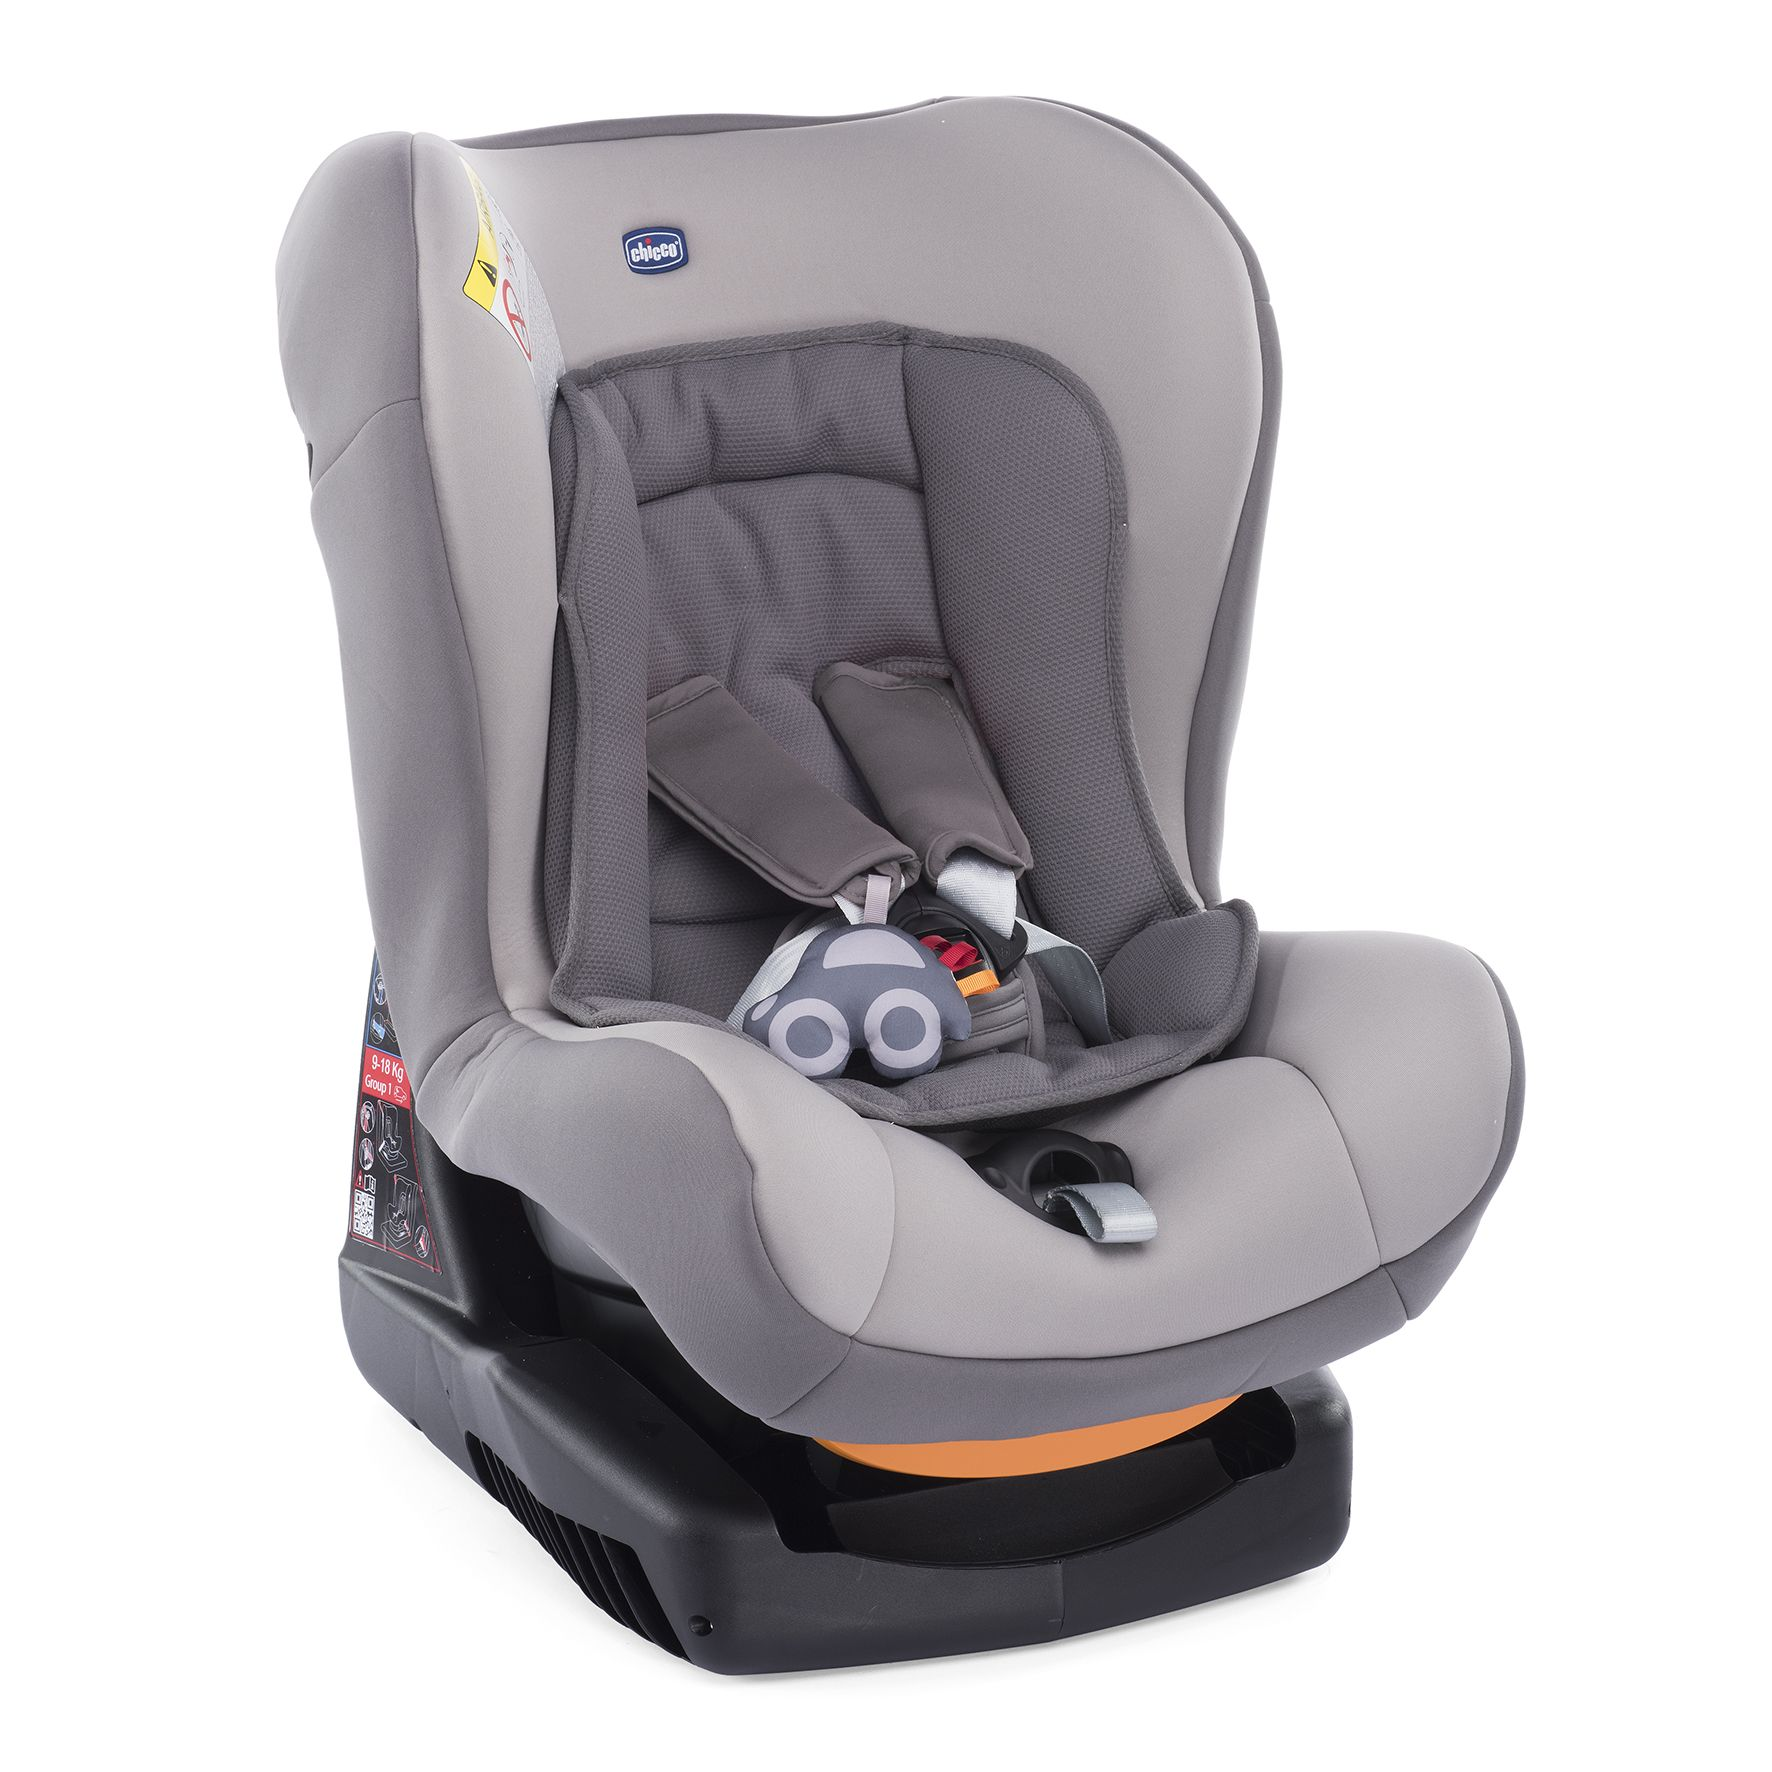 chicco cosmos car seat group 0 1 2018 elegance buy at kidsroom car seats. Black Bedroom Furniture Sets. Home Design Ideas